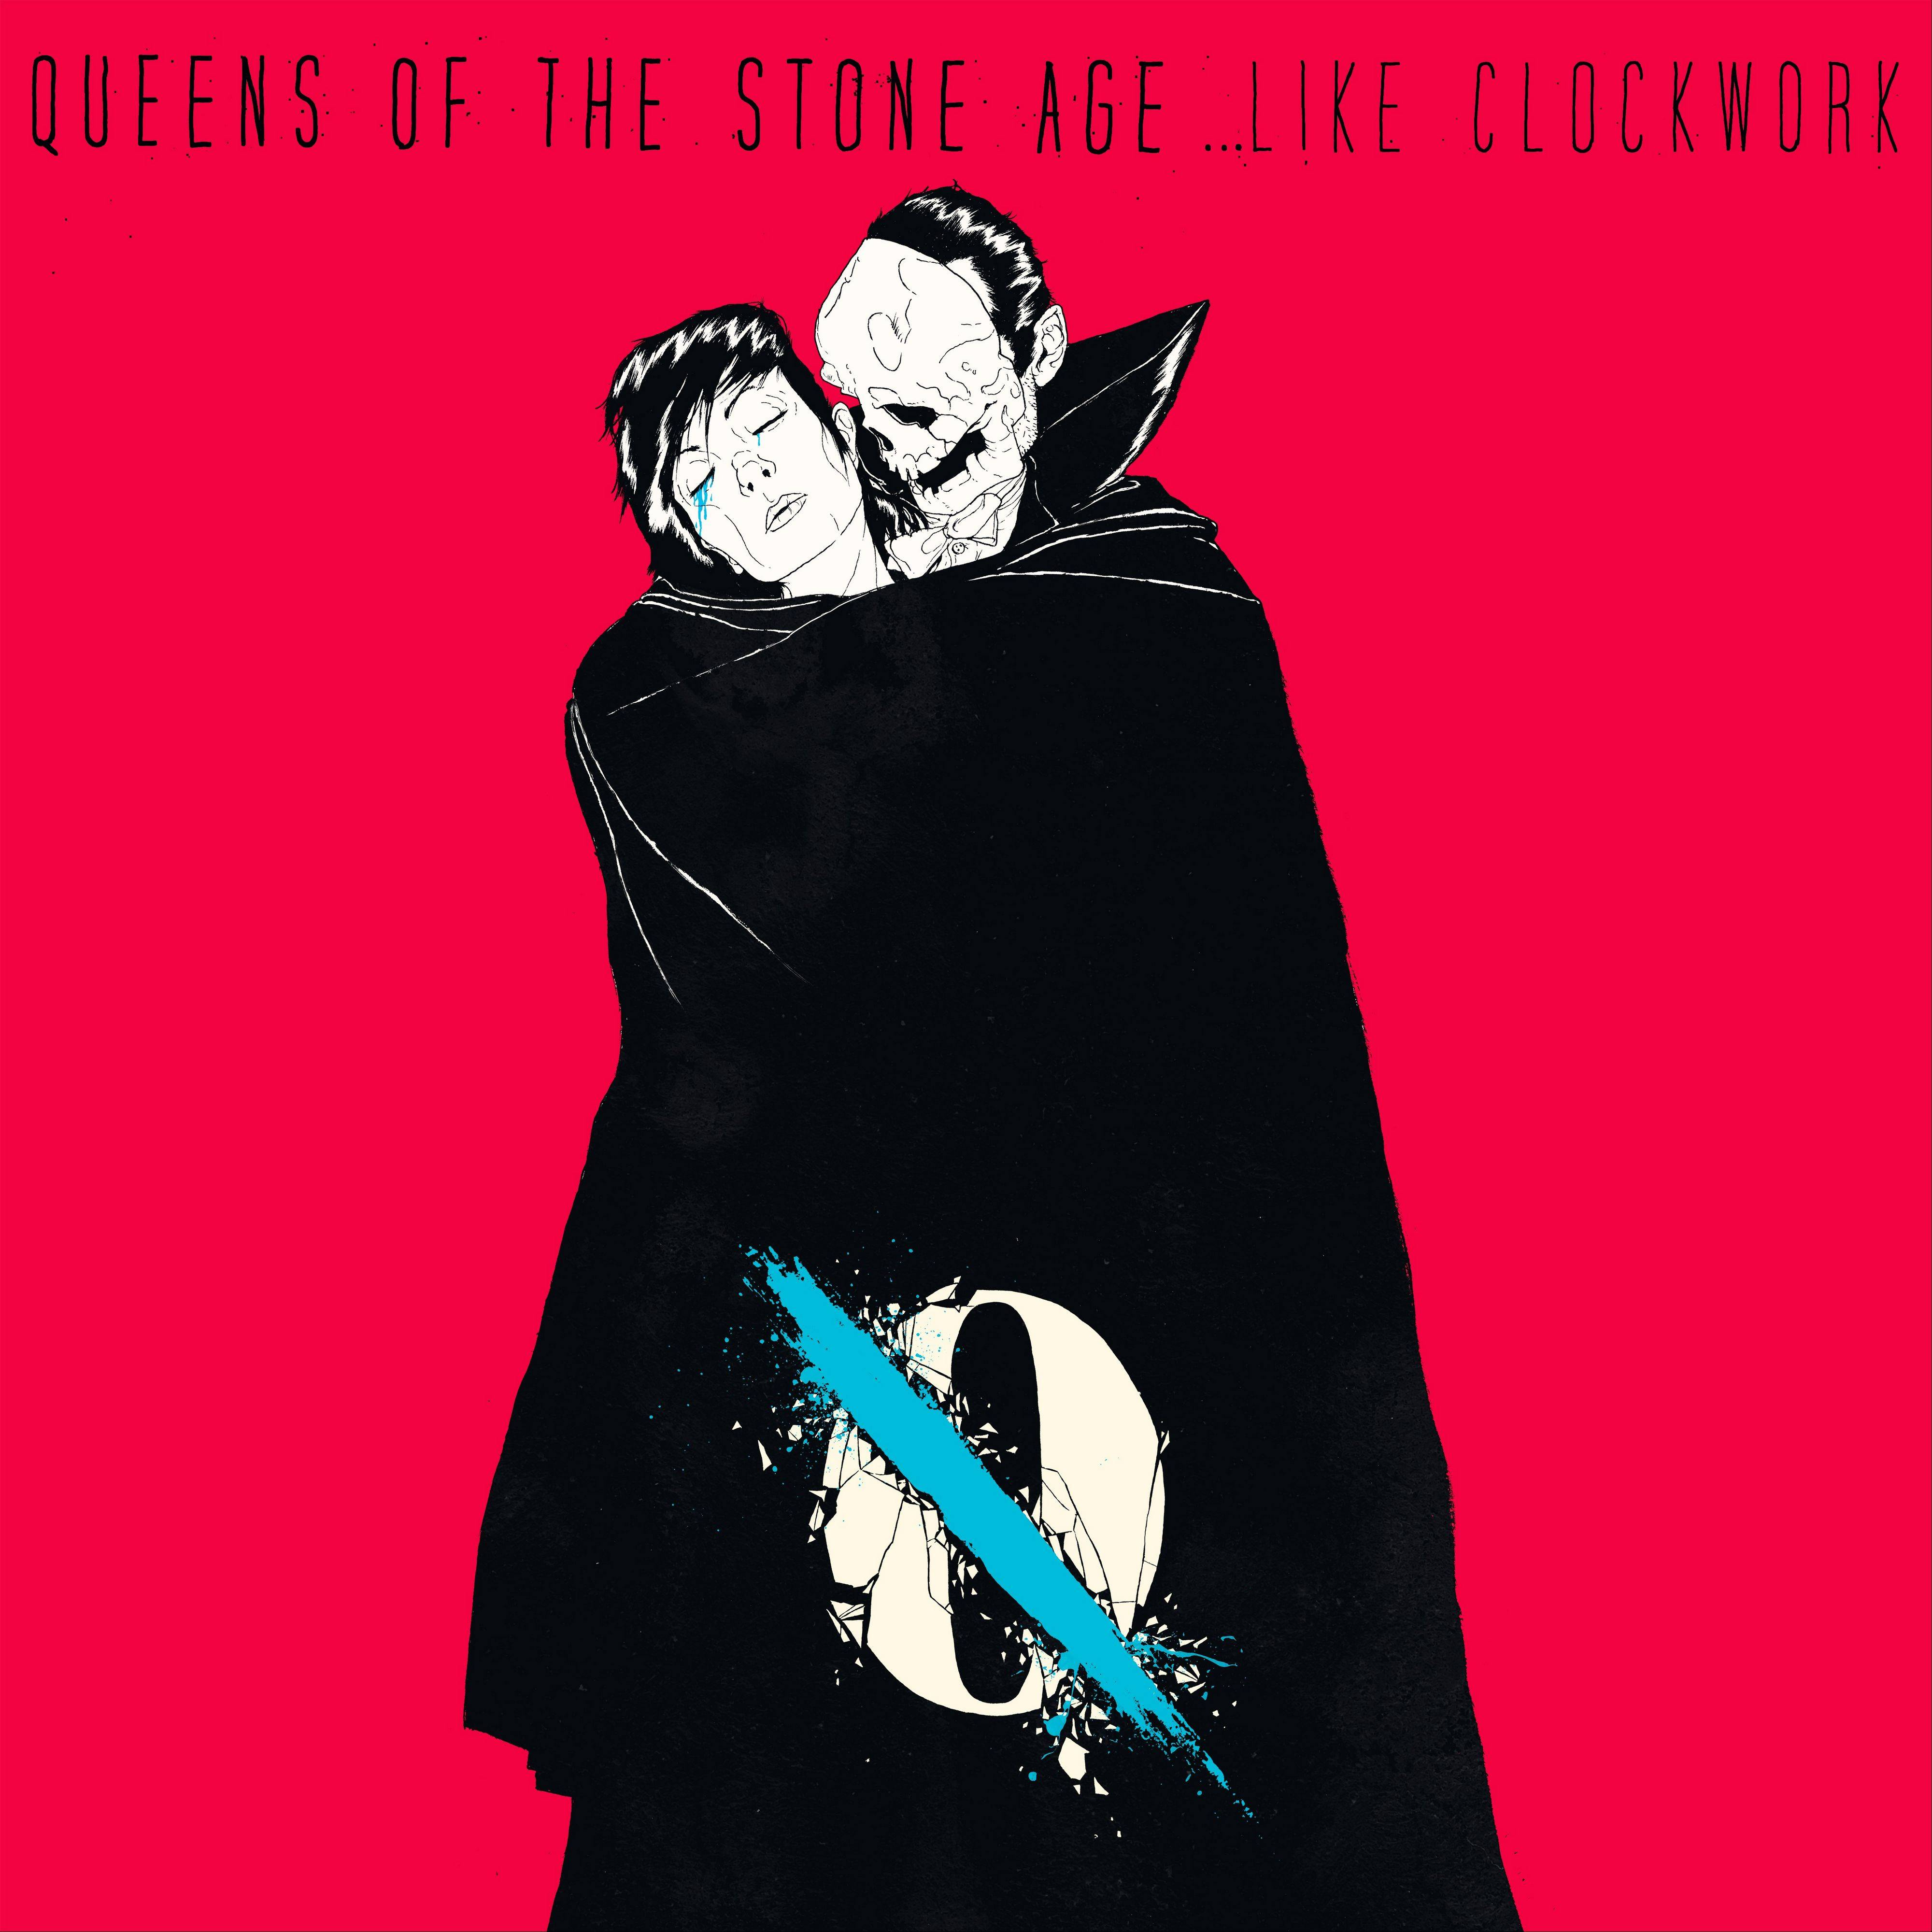 �... Like Clockwork� by Queens of the Stone Age